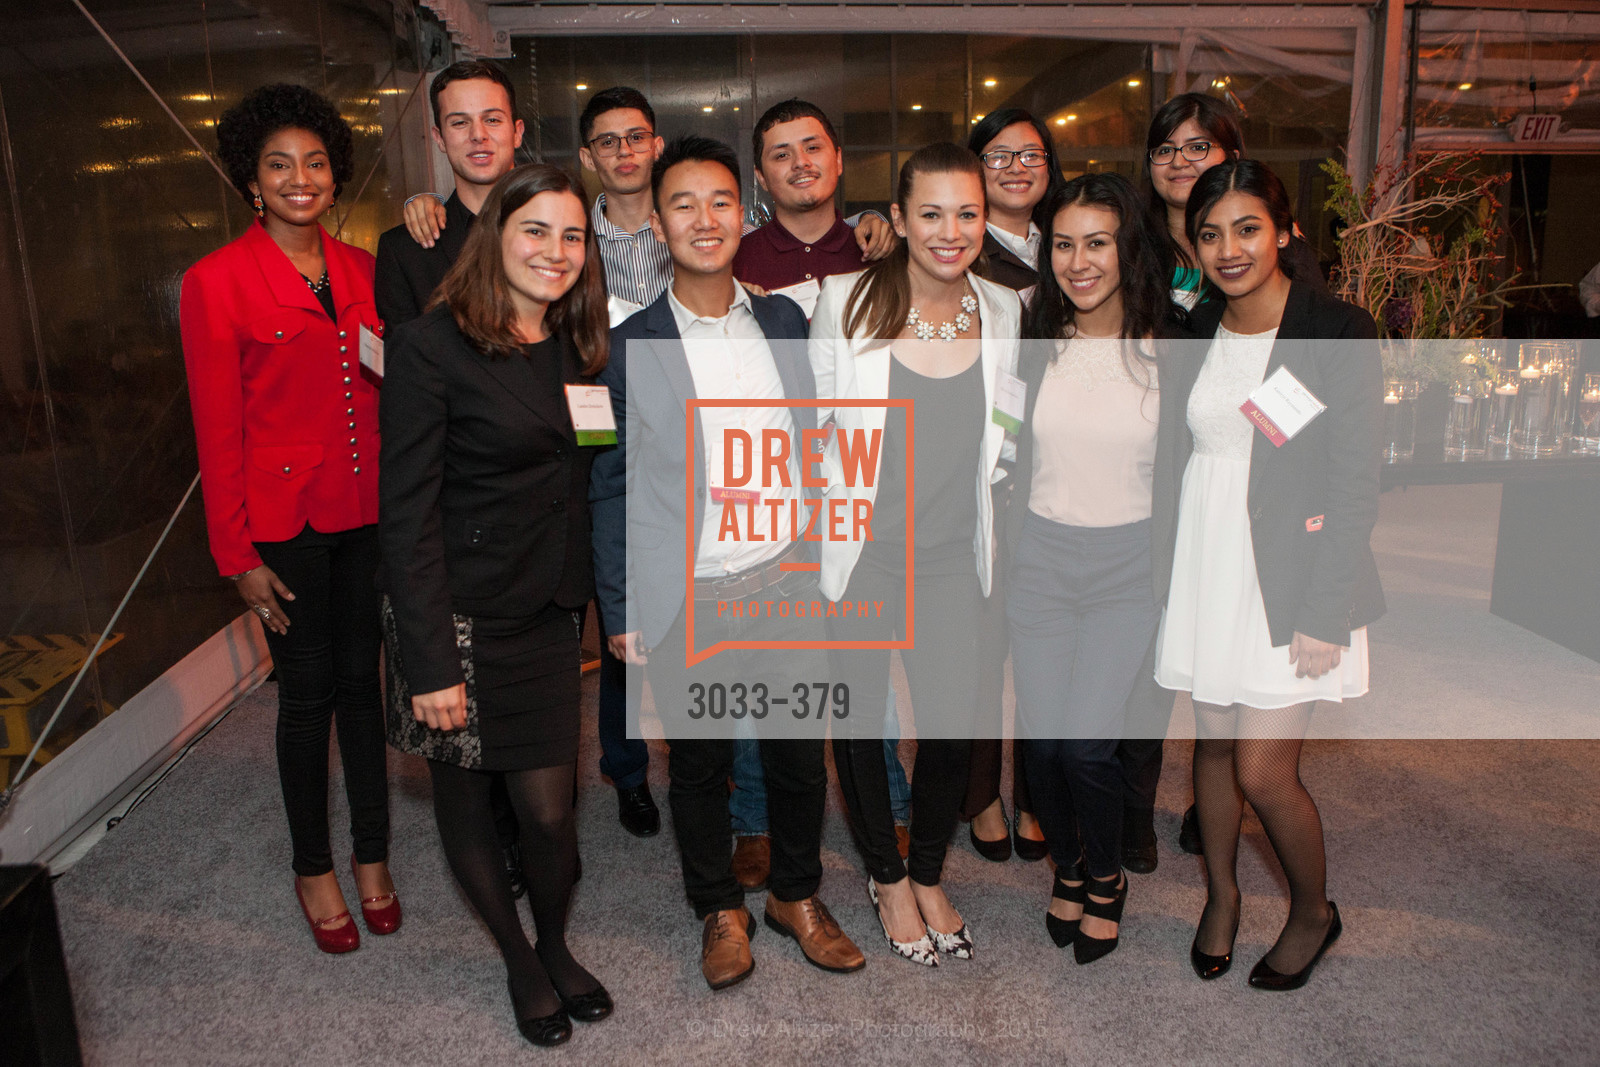 Hannah McKellar, Landen Zernickow, Victor Nazlukhanyan, Michael Nguyen, Olivia Berkowitz, Julie Cai, Kateryn Raymundo, Genesys Works Bay Area Presents BREAKING THROUGH, St. Regis Hotel. 125 3rd St, October 14th, 2015,Drew Altizer, Drew Altizer Photography, full-service agency, private events, San Francisco photographer, photographer california